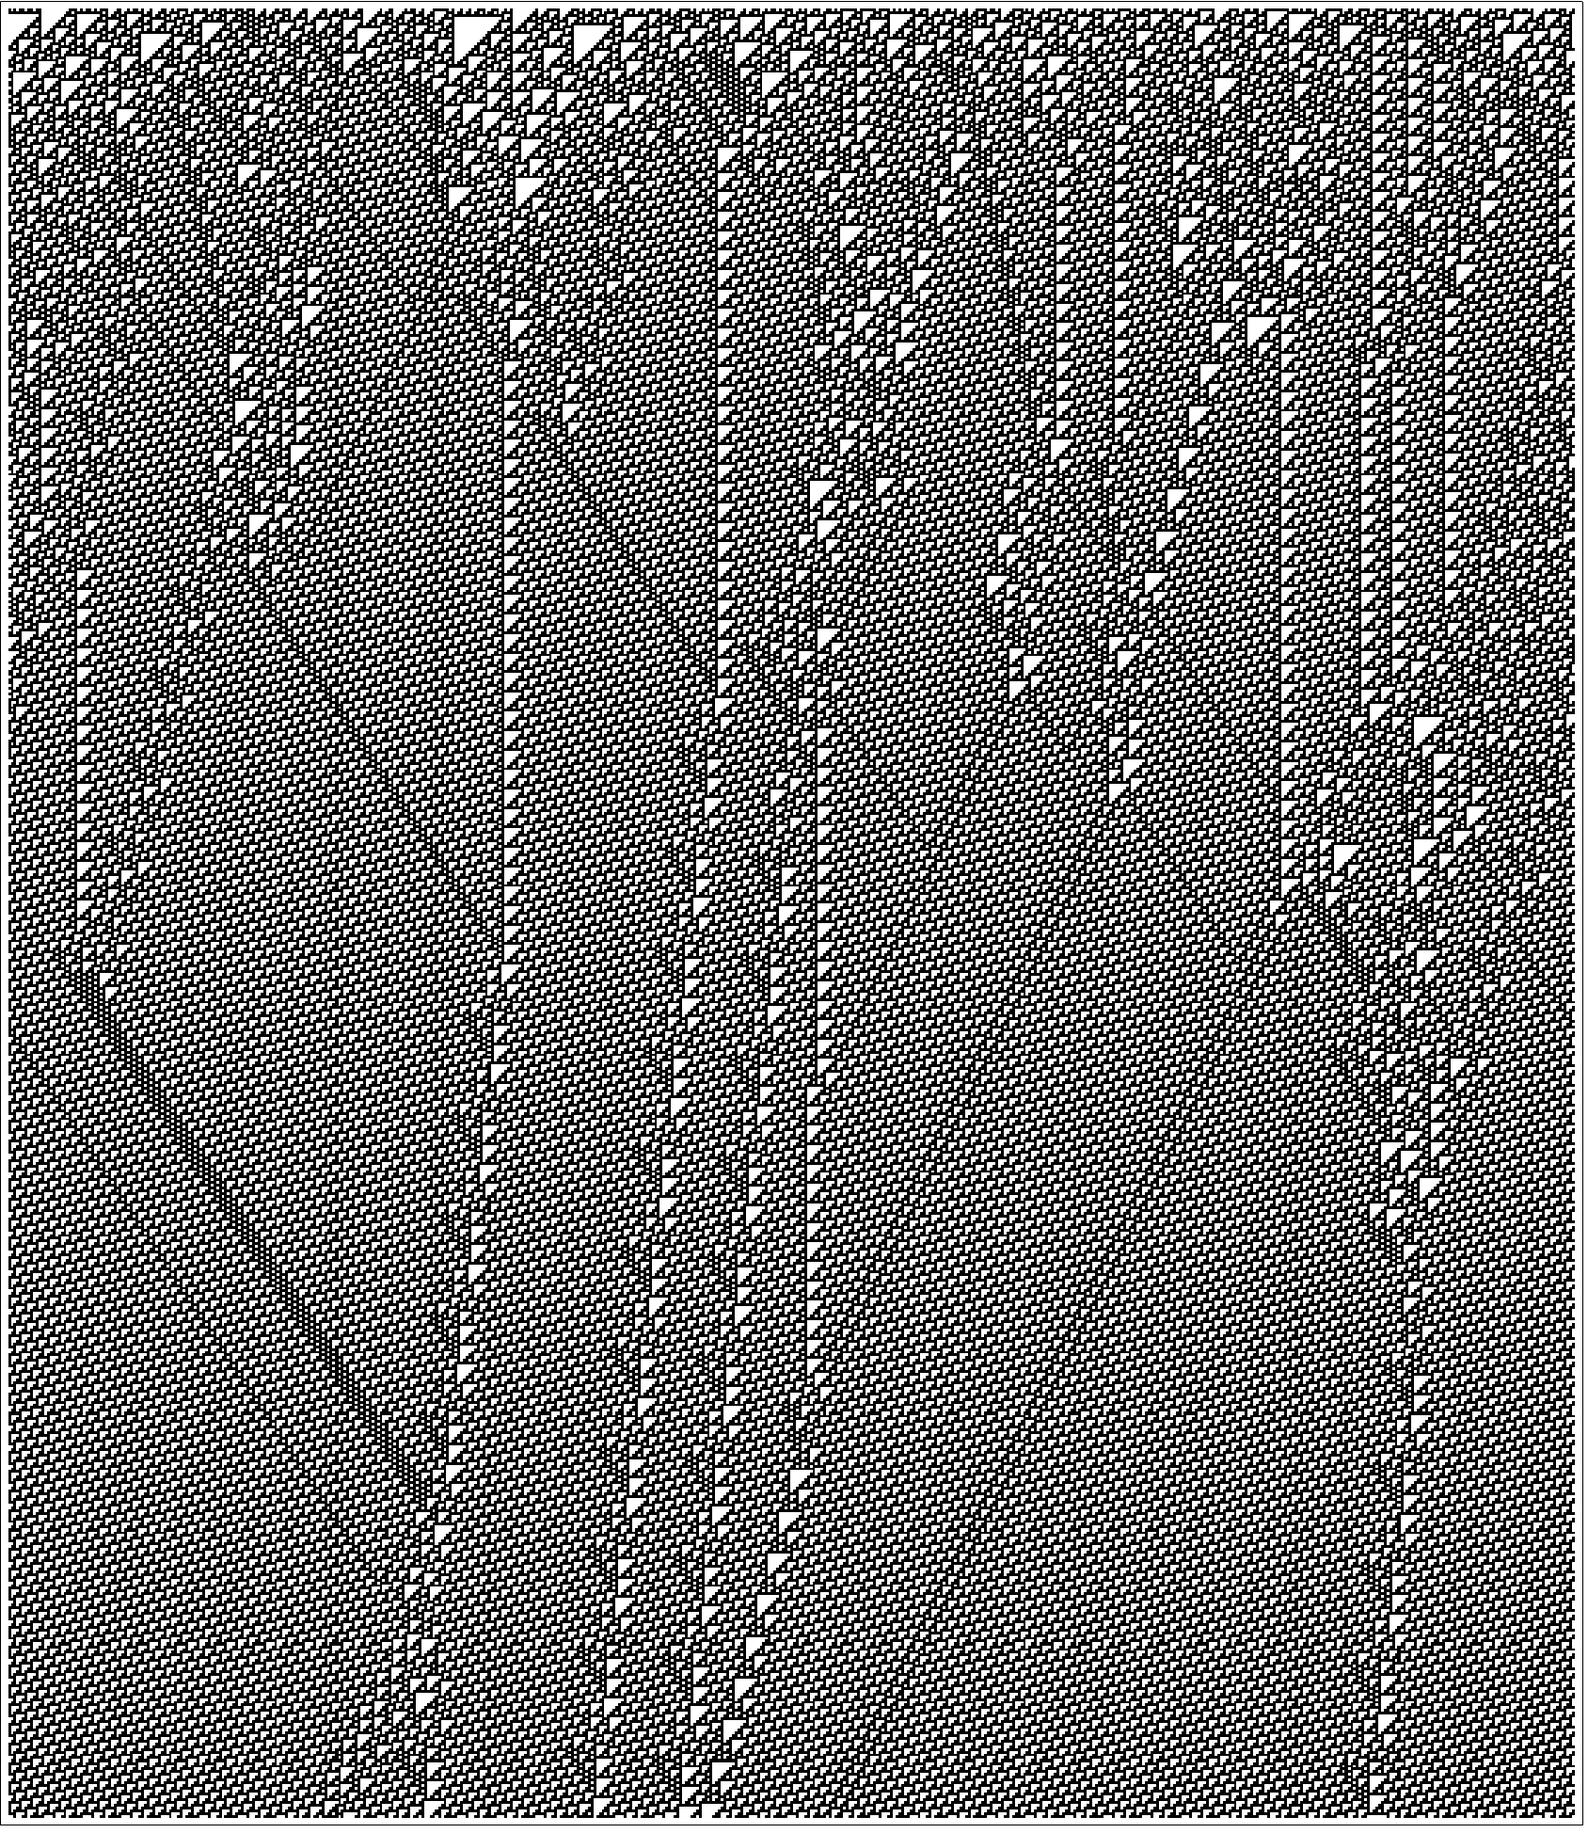 Typical example of the behavior of the rule 110 cellular automaton